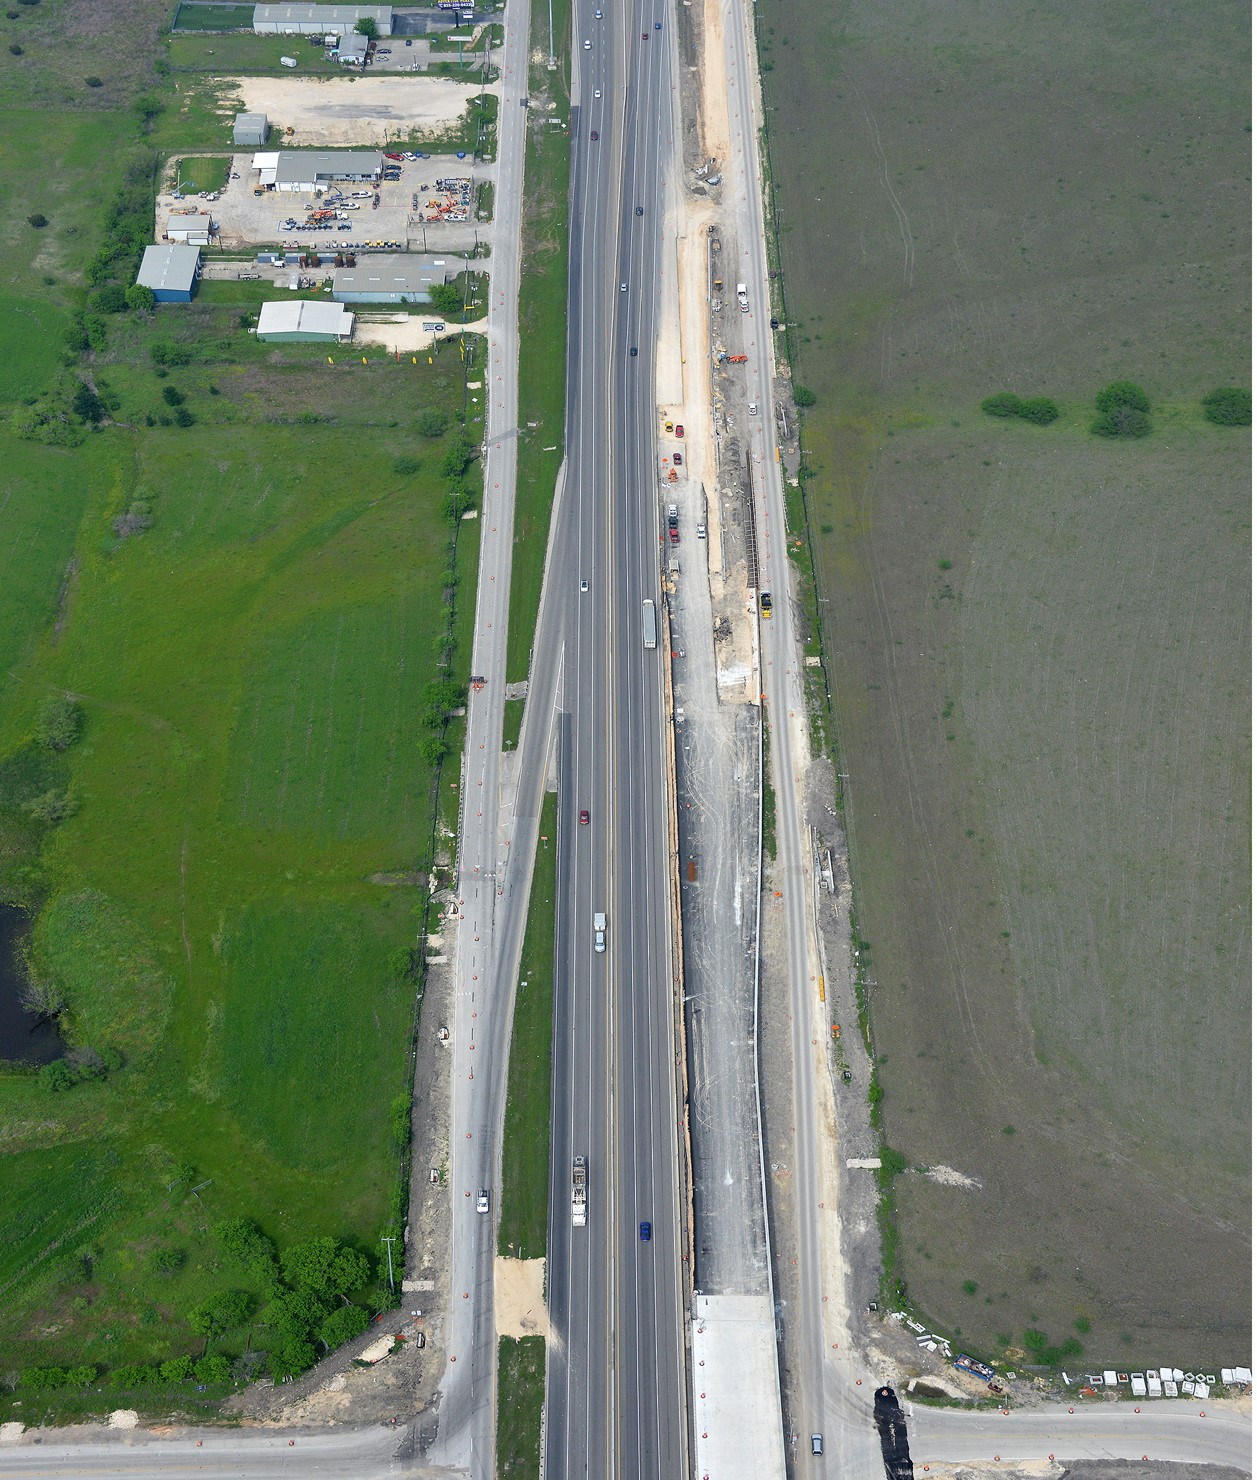 I-35 at Posey Road aerial view - April 2020